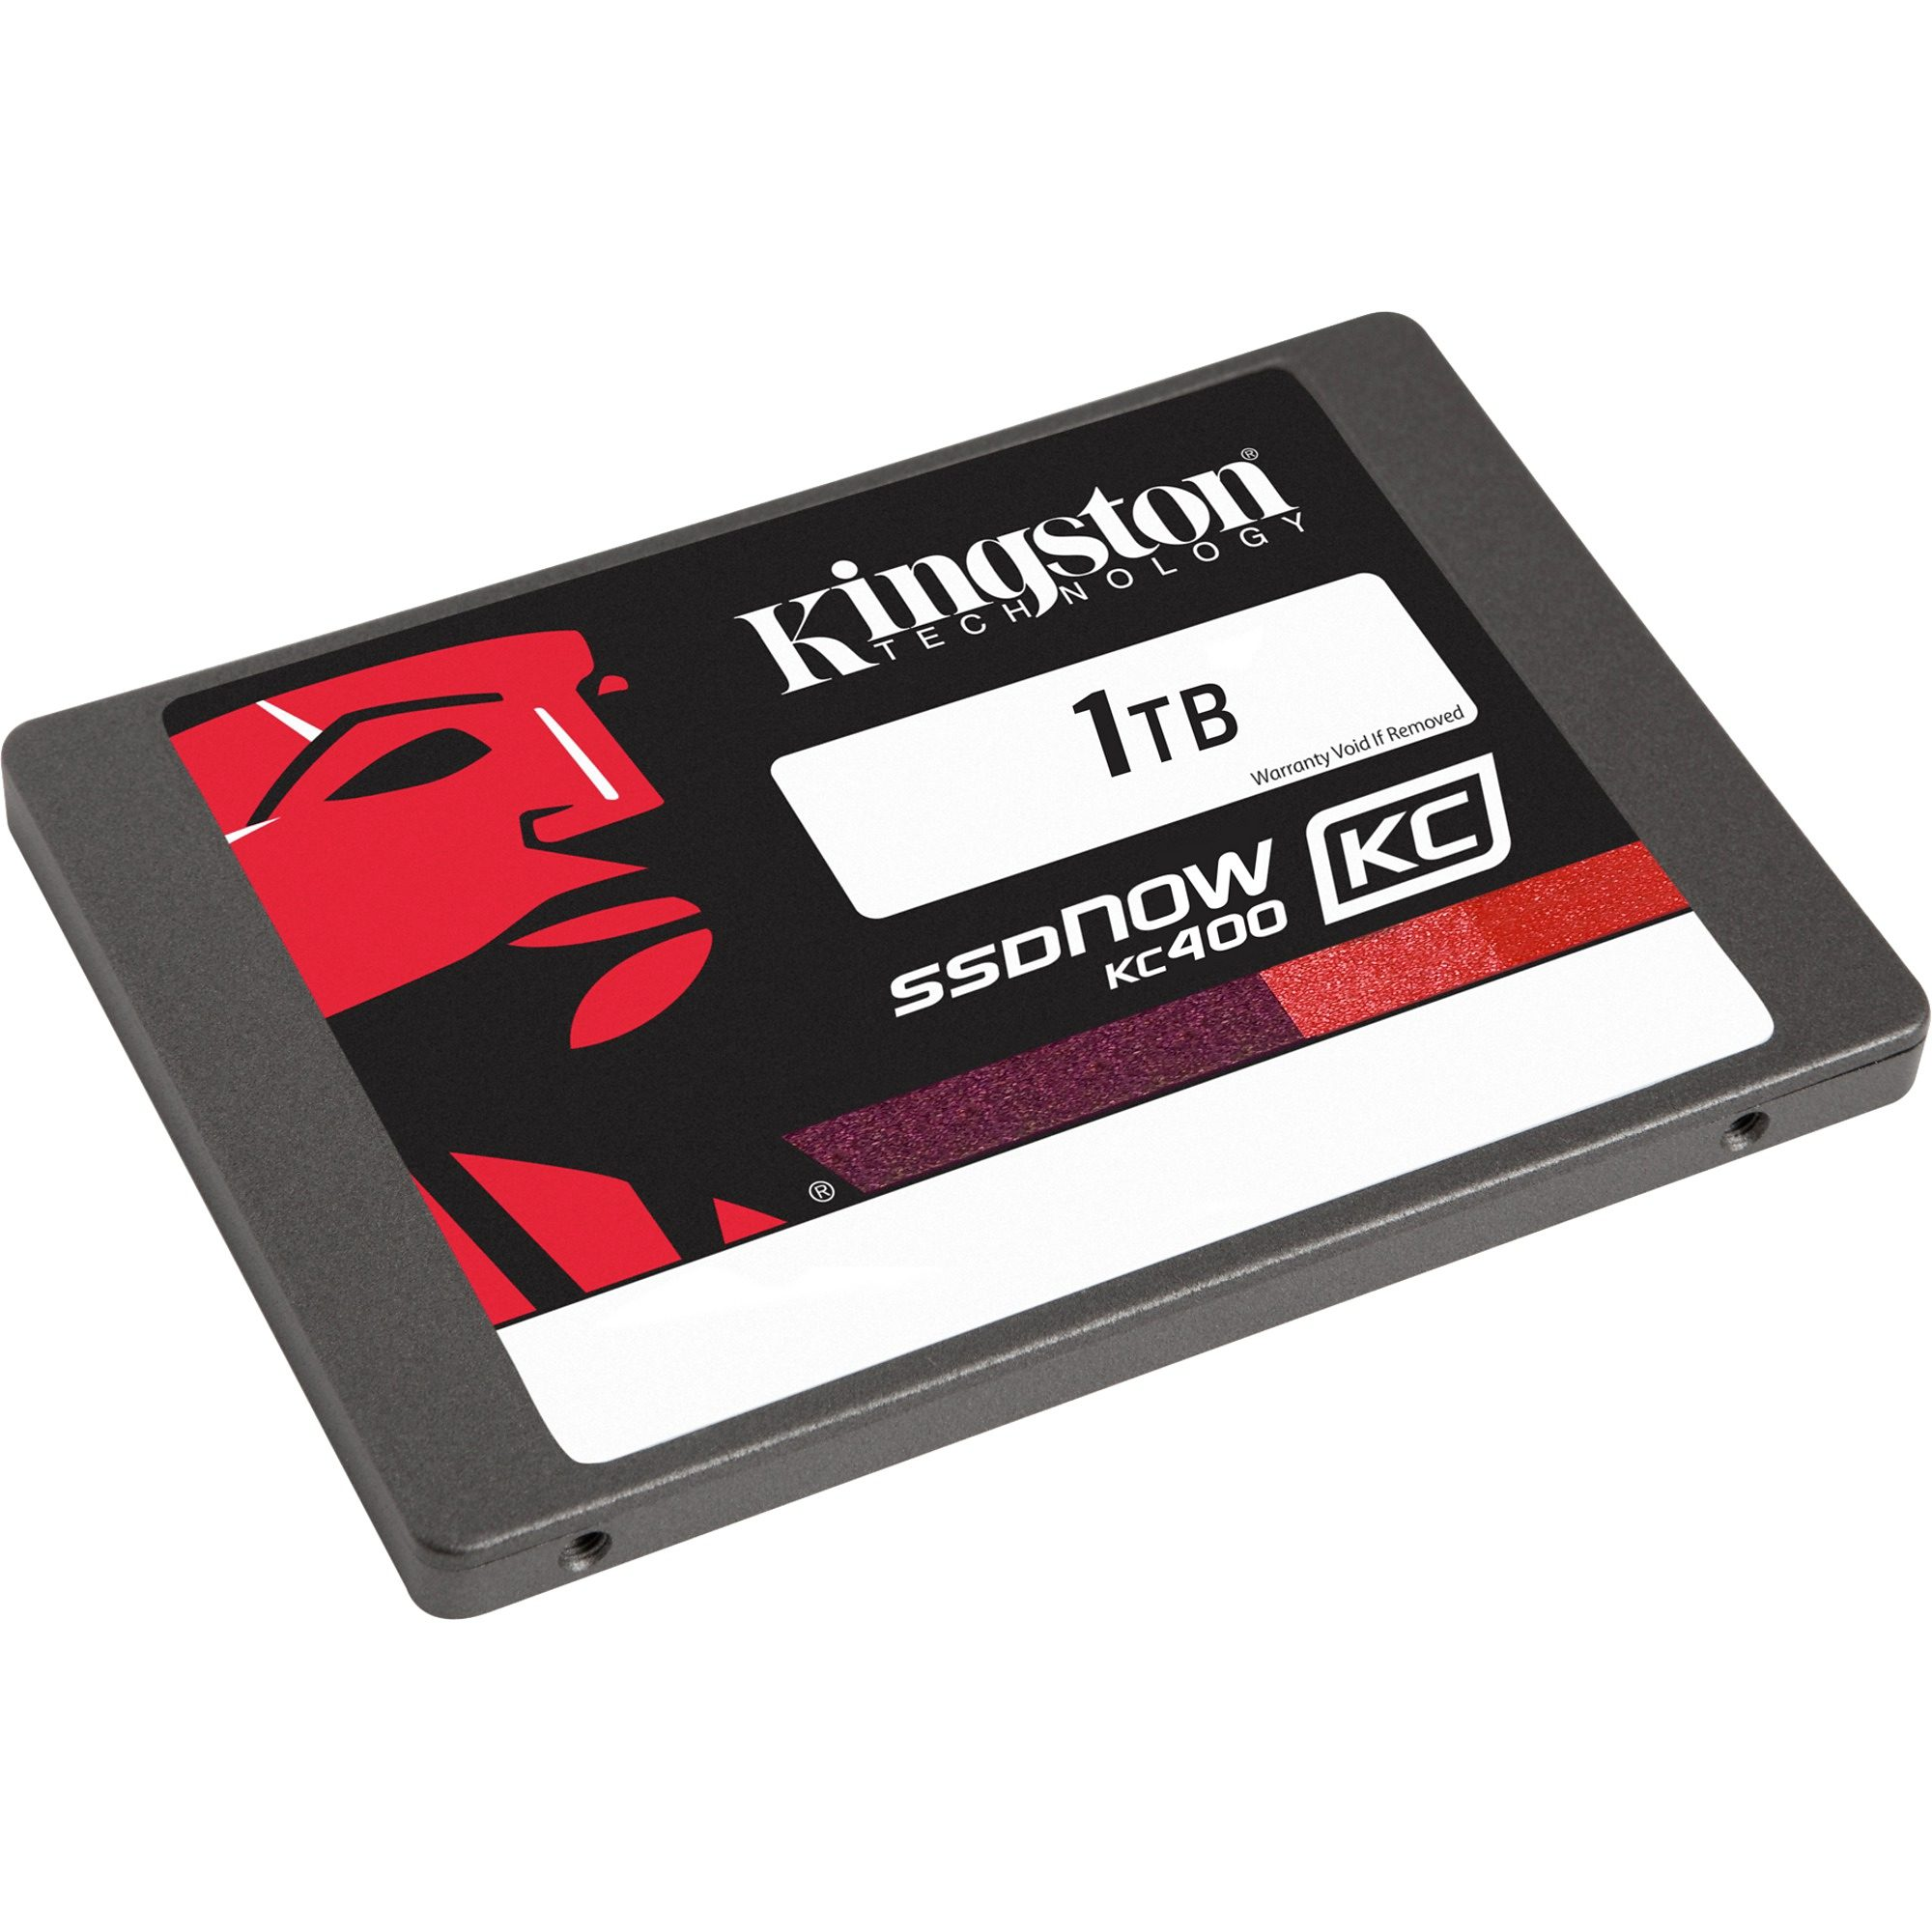 Kingston Solid State Drive »SKC400S37/1T 1 TB«